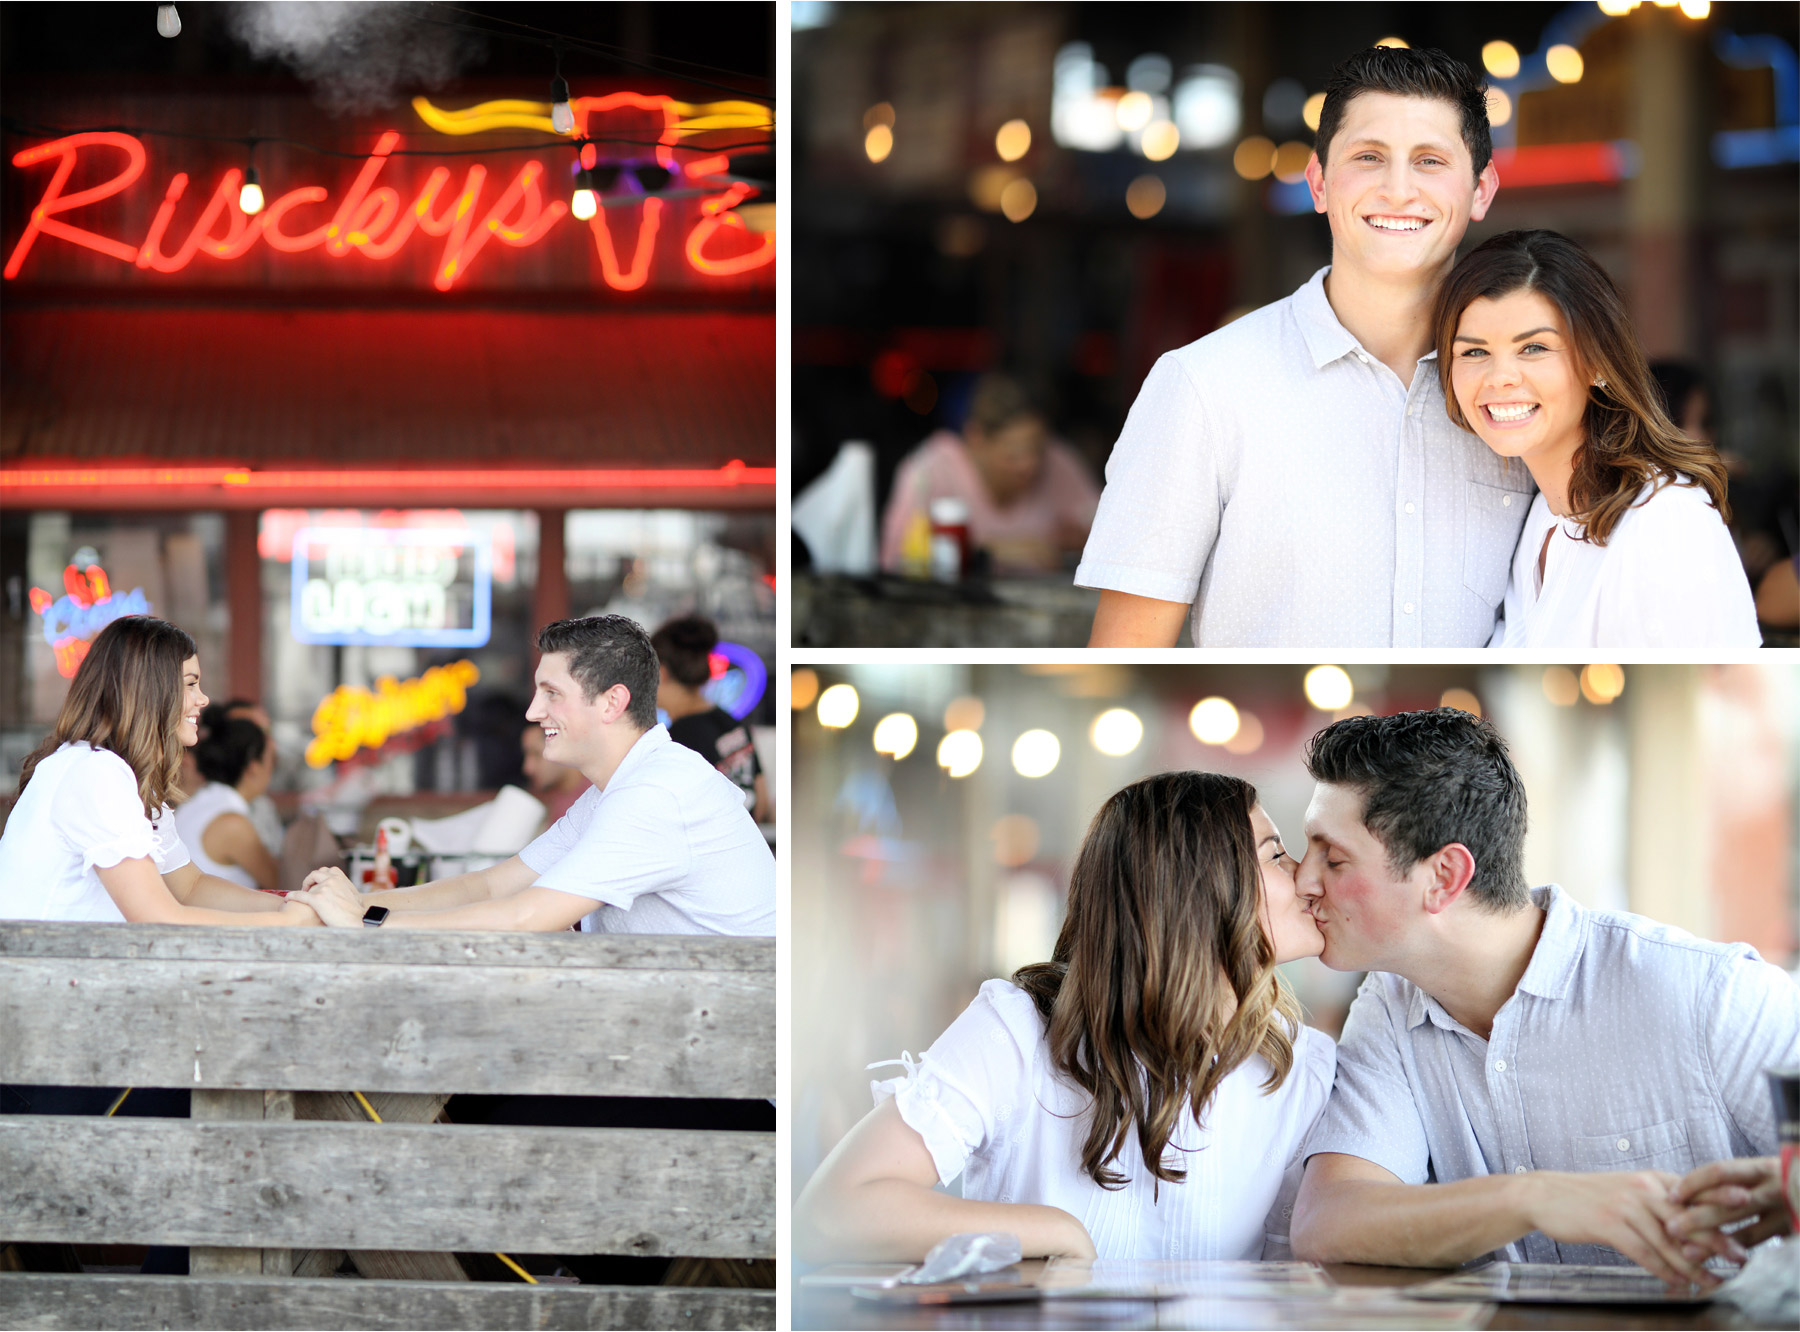 07-Fly-to-Me-Destination-Engagement-Session-Vick-Photography-Fort-Worth-Texas-Couple-BBQ-Maggie-and-Matt.jpg